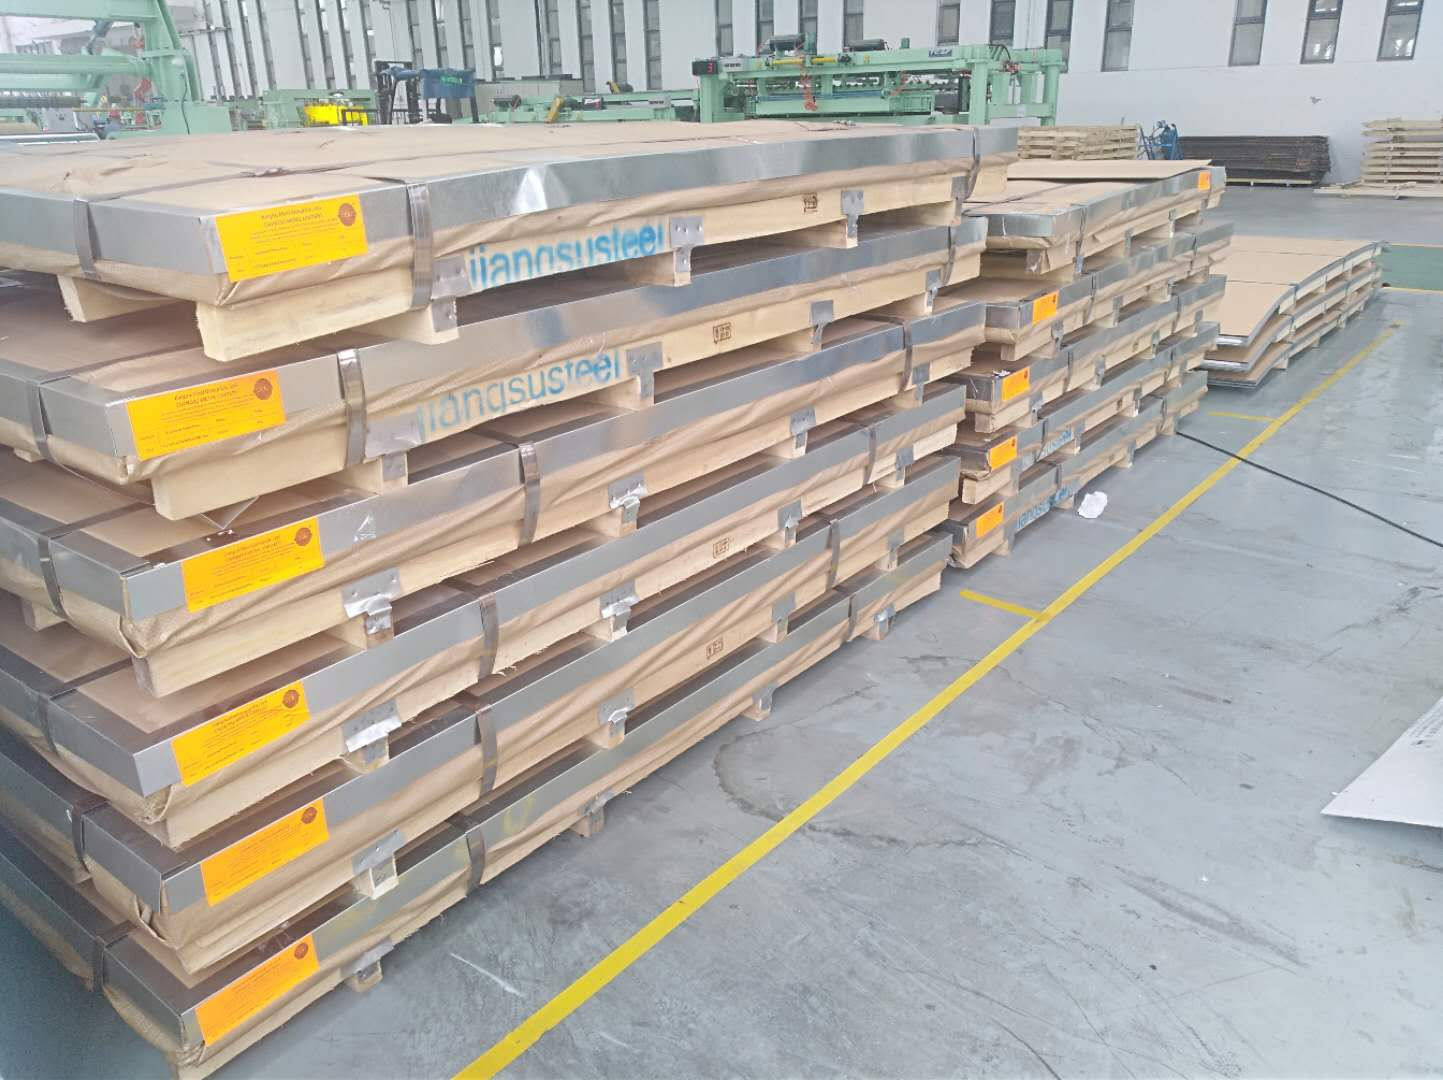 ASTM 304 Stainless Steel Plate - Jiangsu Steel Group Co